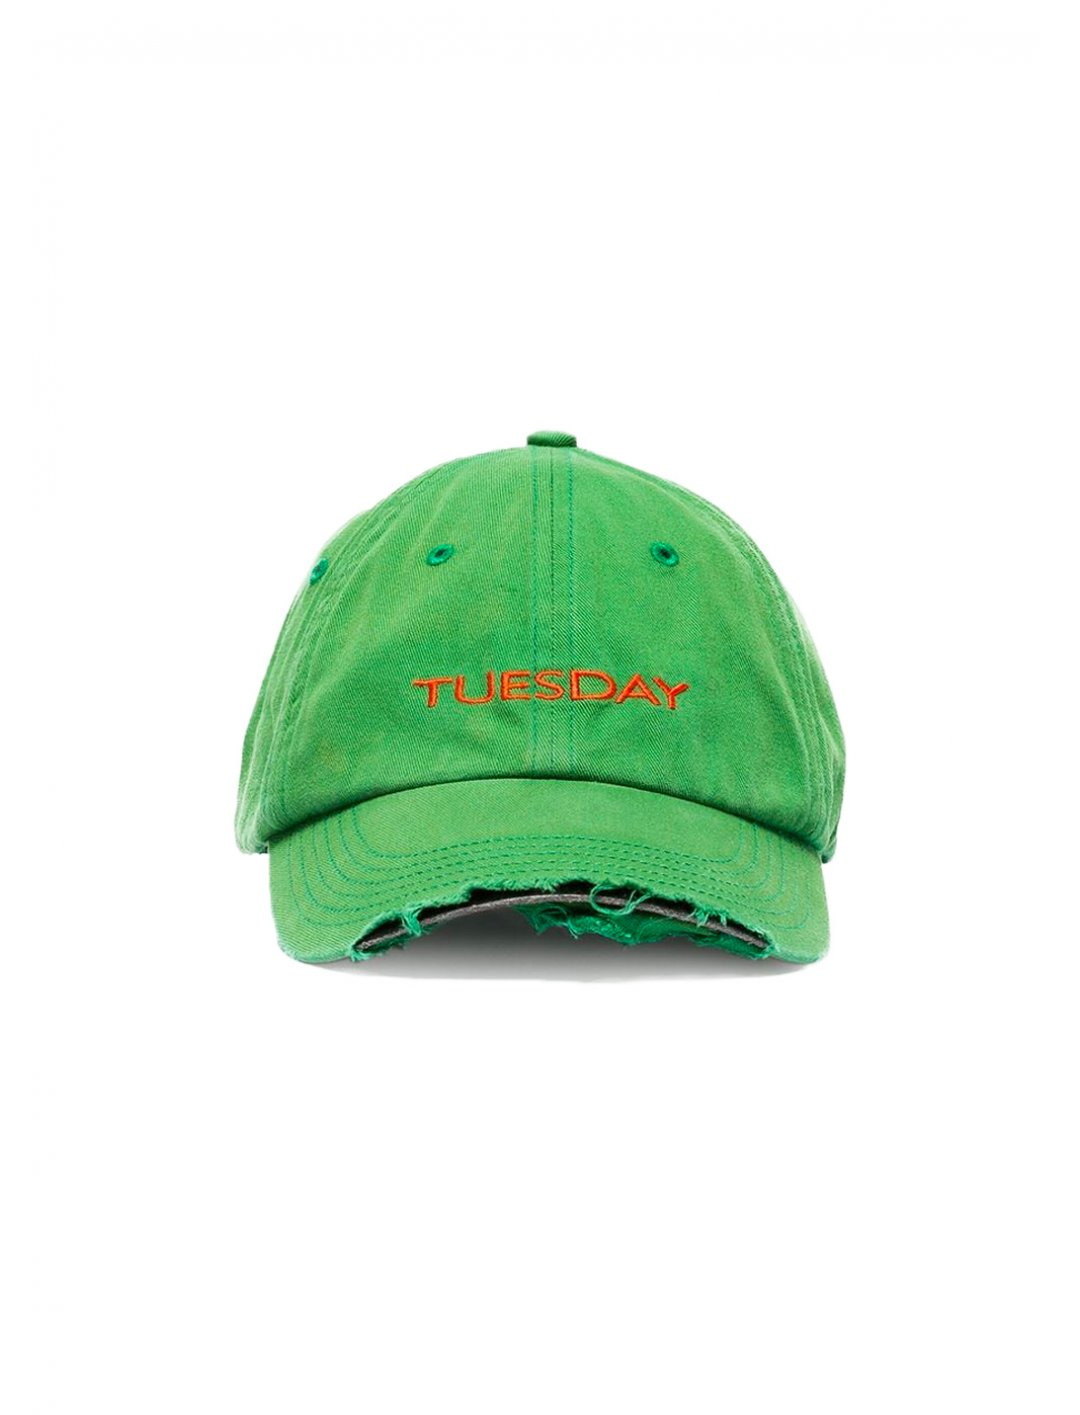 "Tuesday Embroidered Baseball Cap {""id"":16,""product_section_id"":1,""name"":""Accessories"",""order"":15} Vetements"